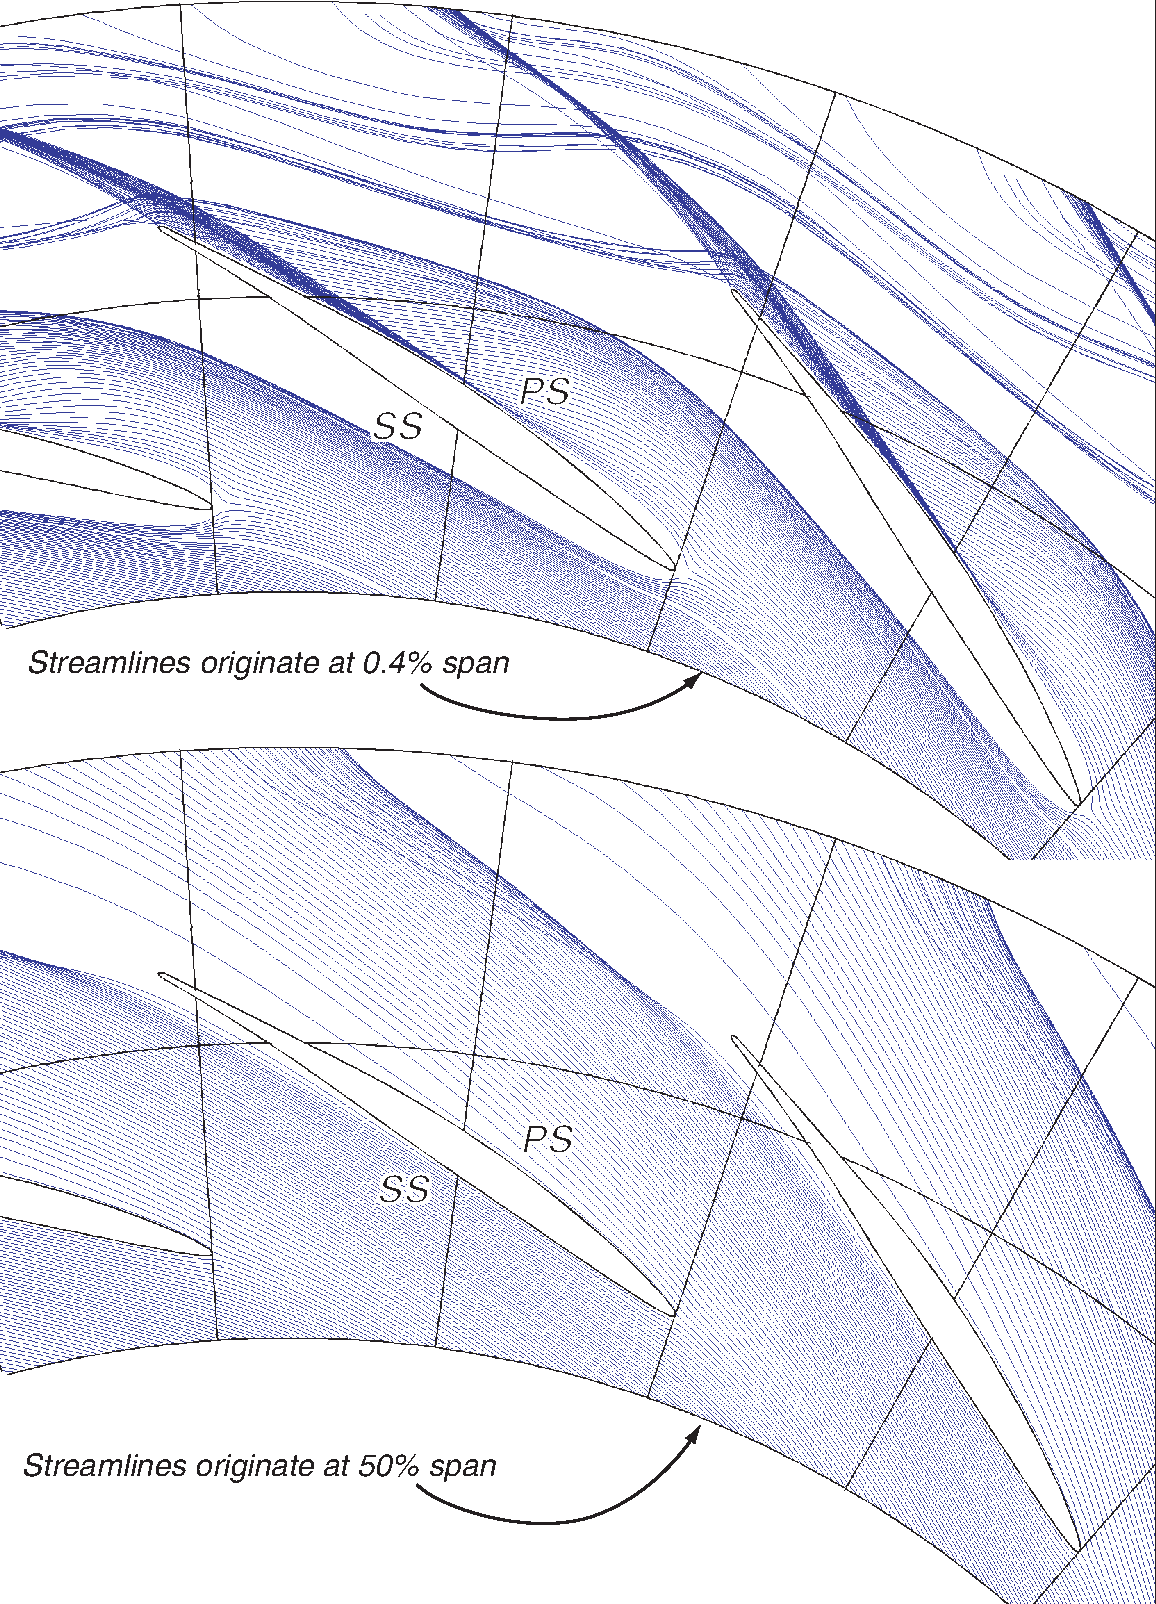 Figure 2-17: Streamlines originating at 0.4% span (top) and 50% span (bottom) from the hub endwall, showing the differences in streamline curvature between boundary layer and core flow in the diffuser passage.